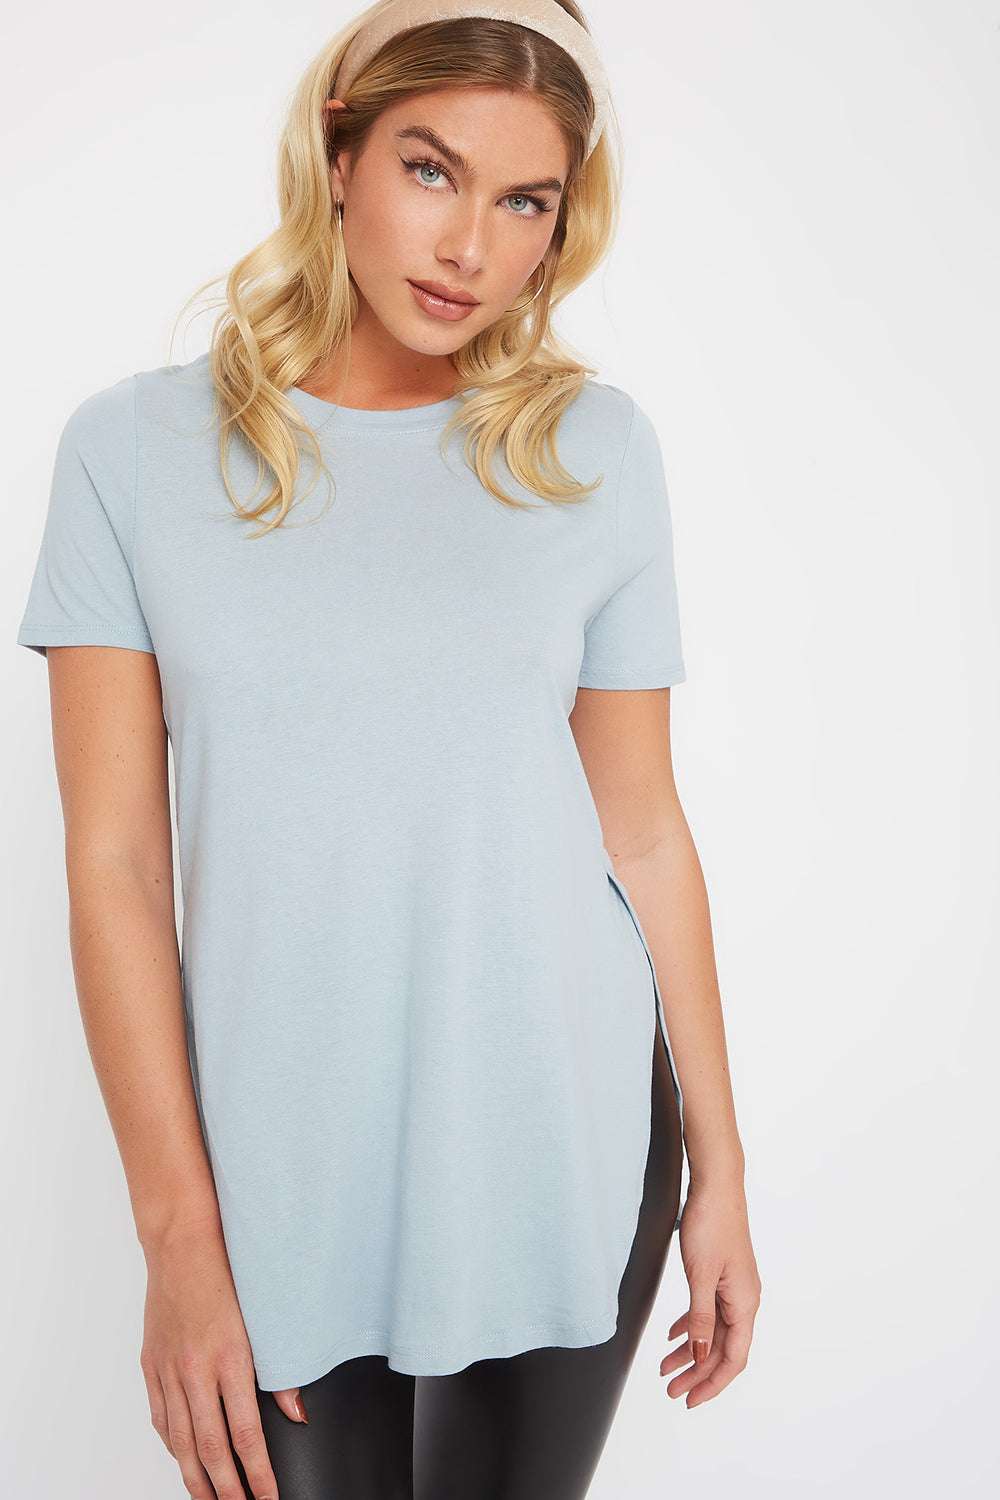 Slit Scoop Neck T-Shirt Light Blue